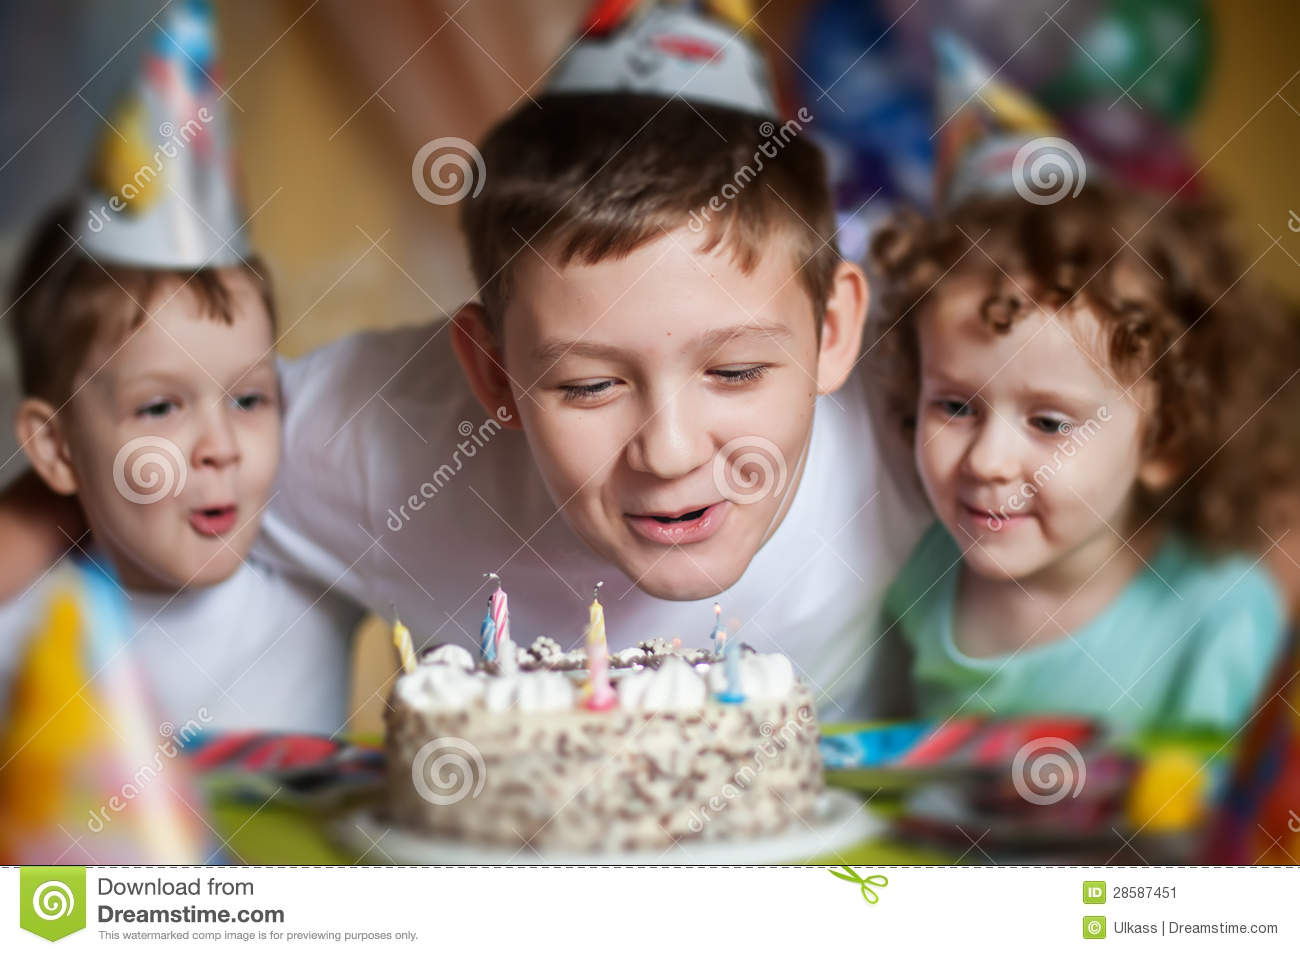 boy blows out the candles on a birthday cake and hugs his brother and sister